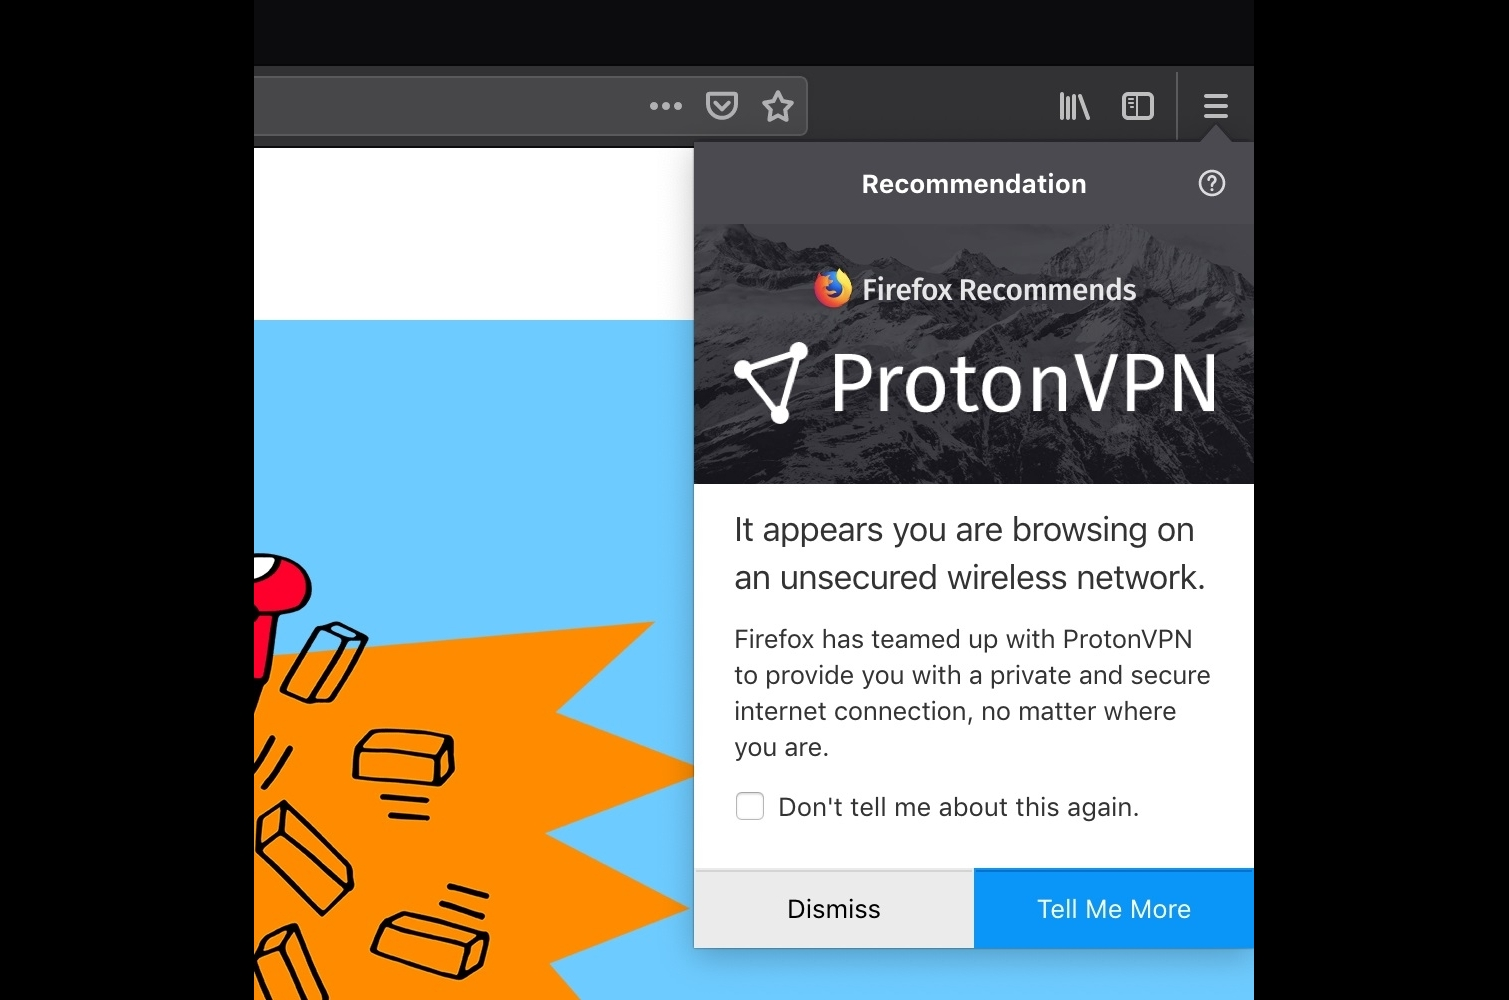 Mozilla to offer premium services to Firefox users via paid